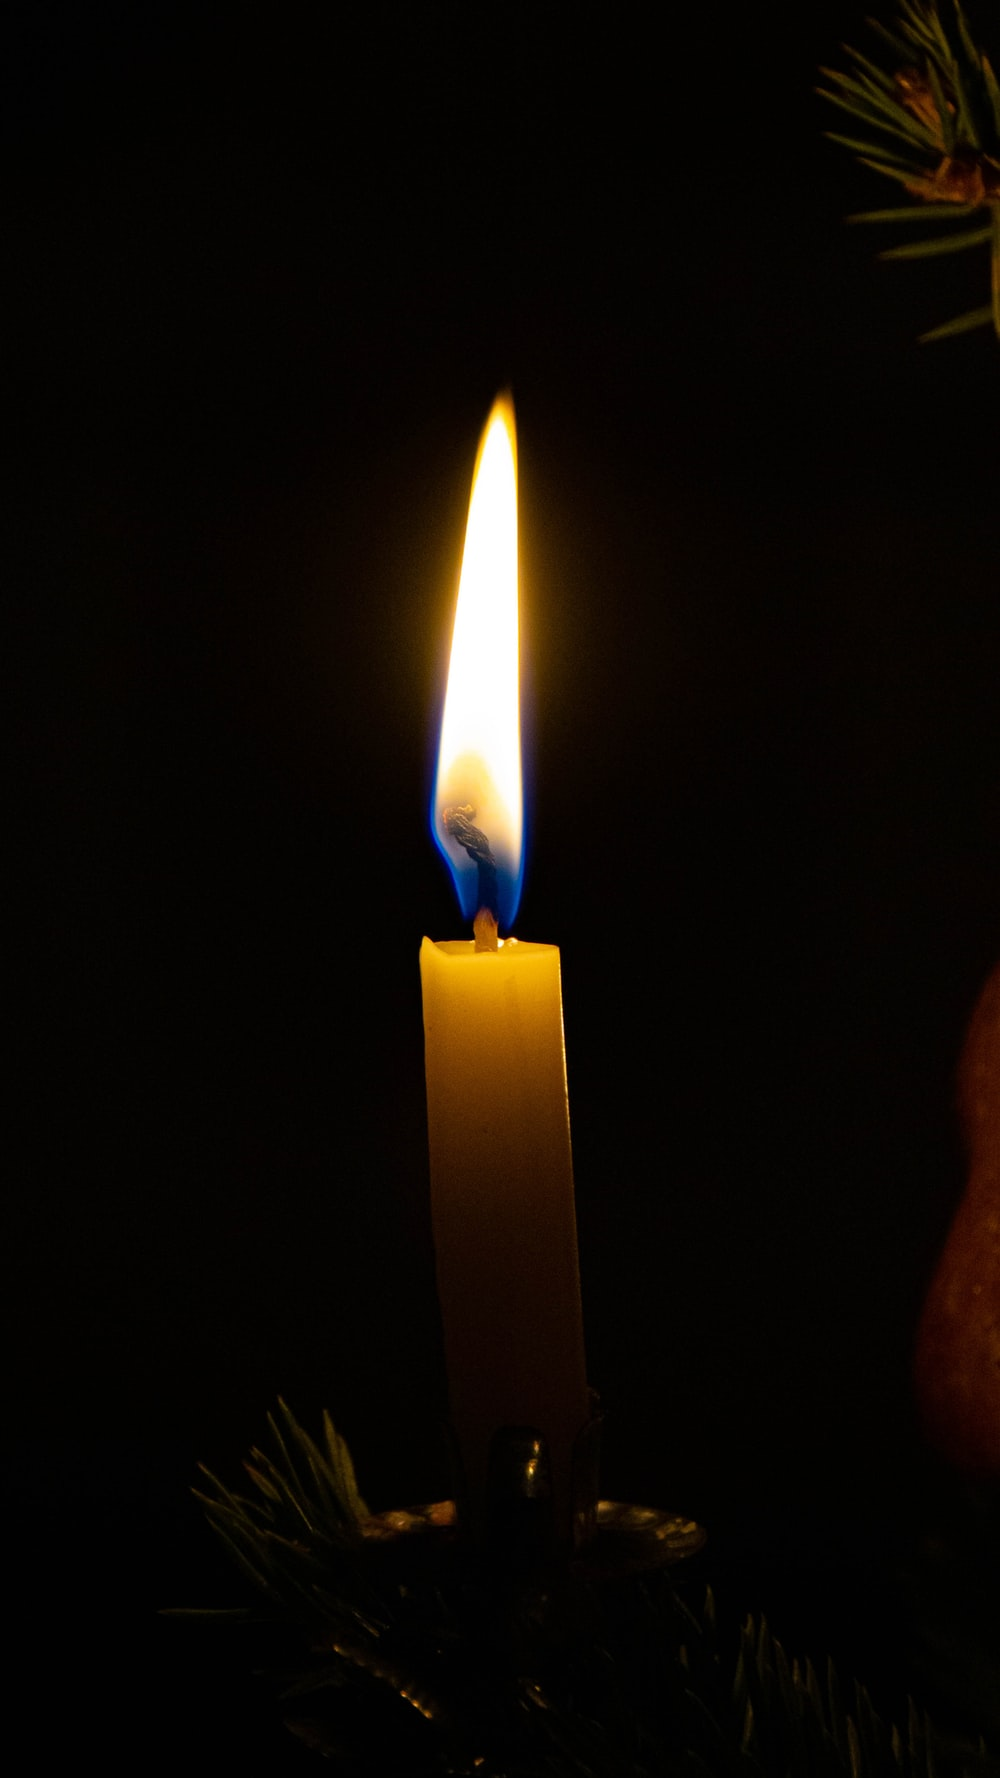 white candle in dark room